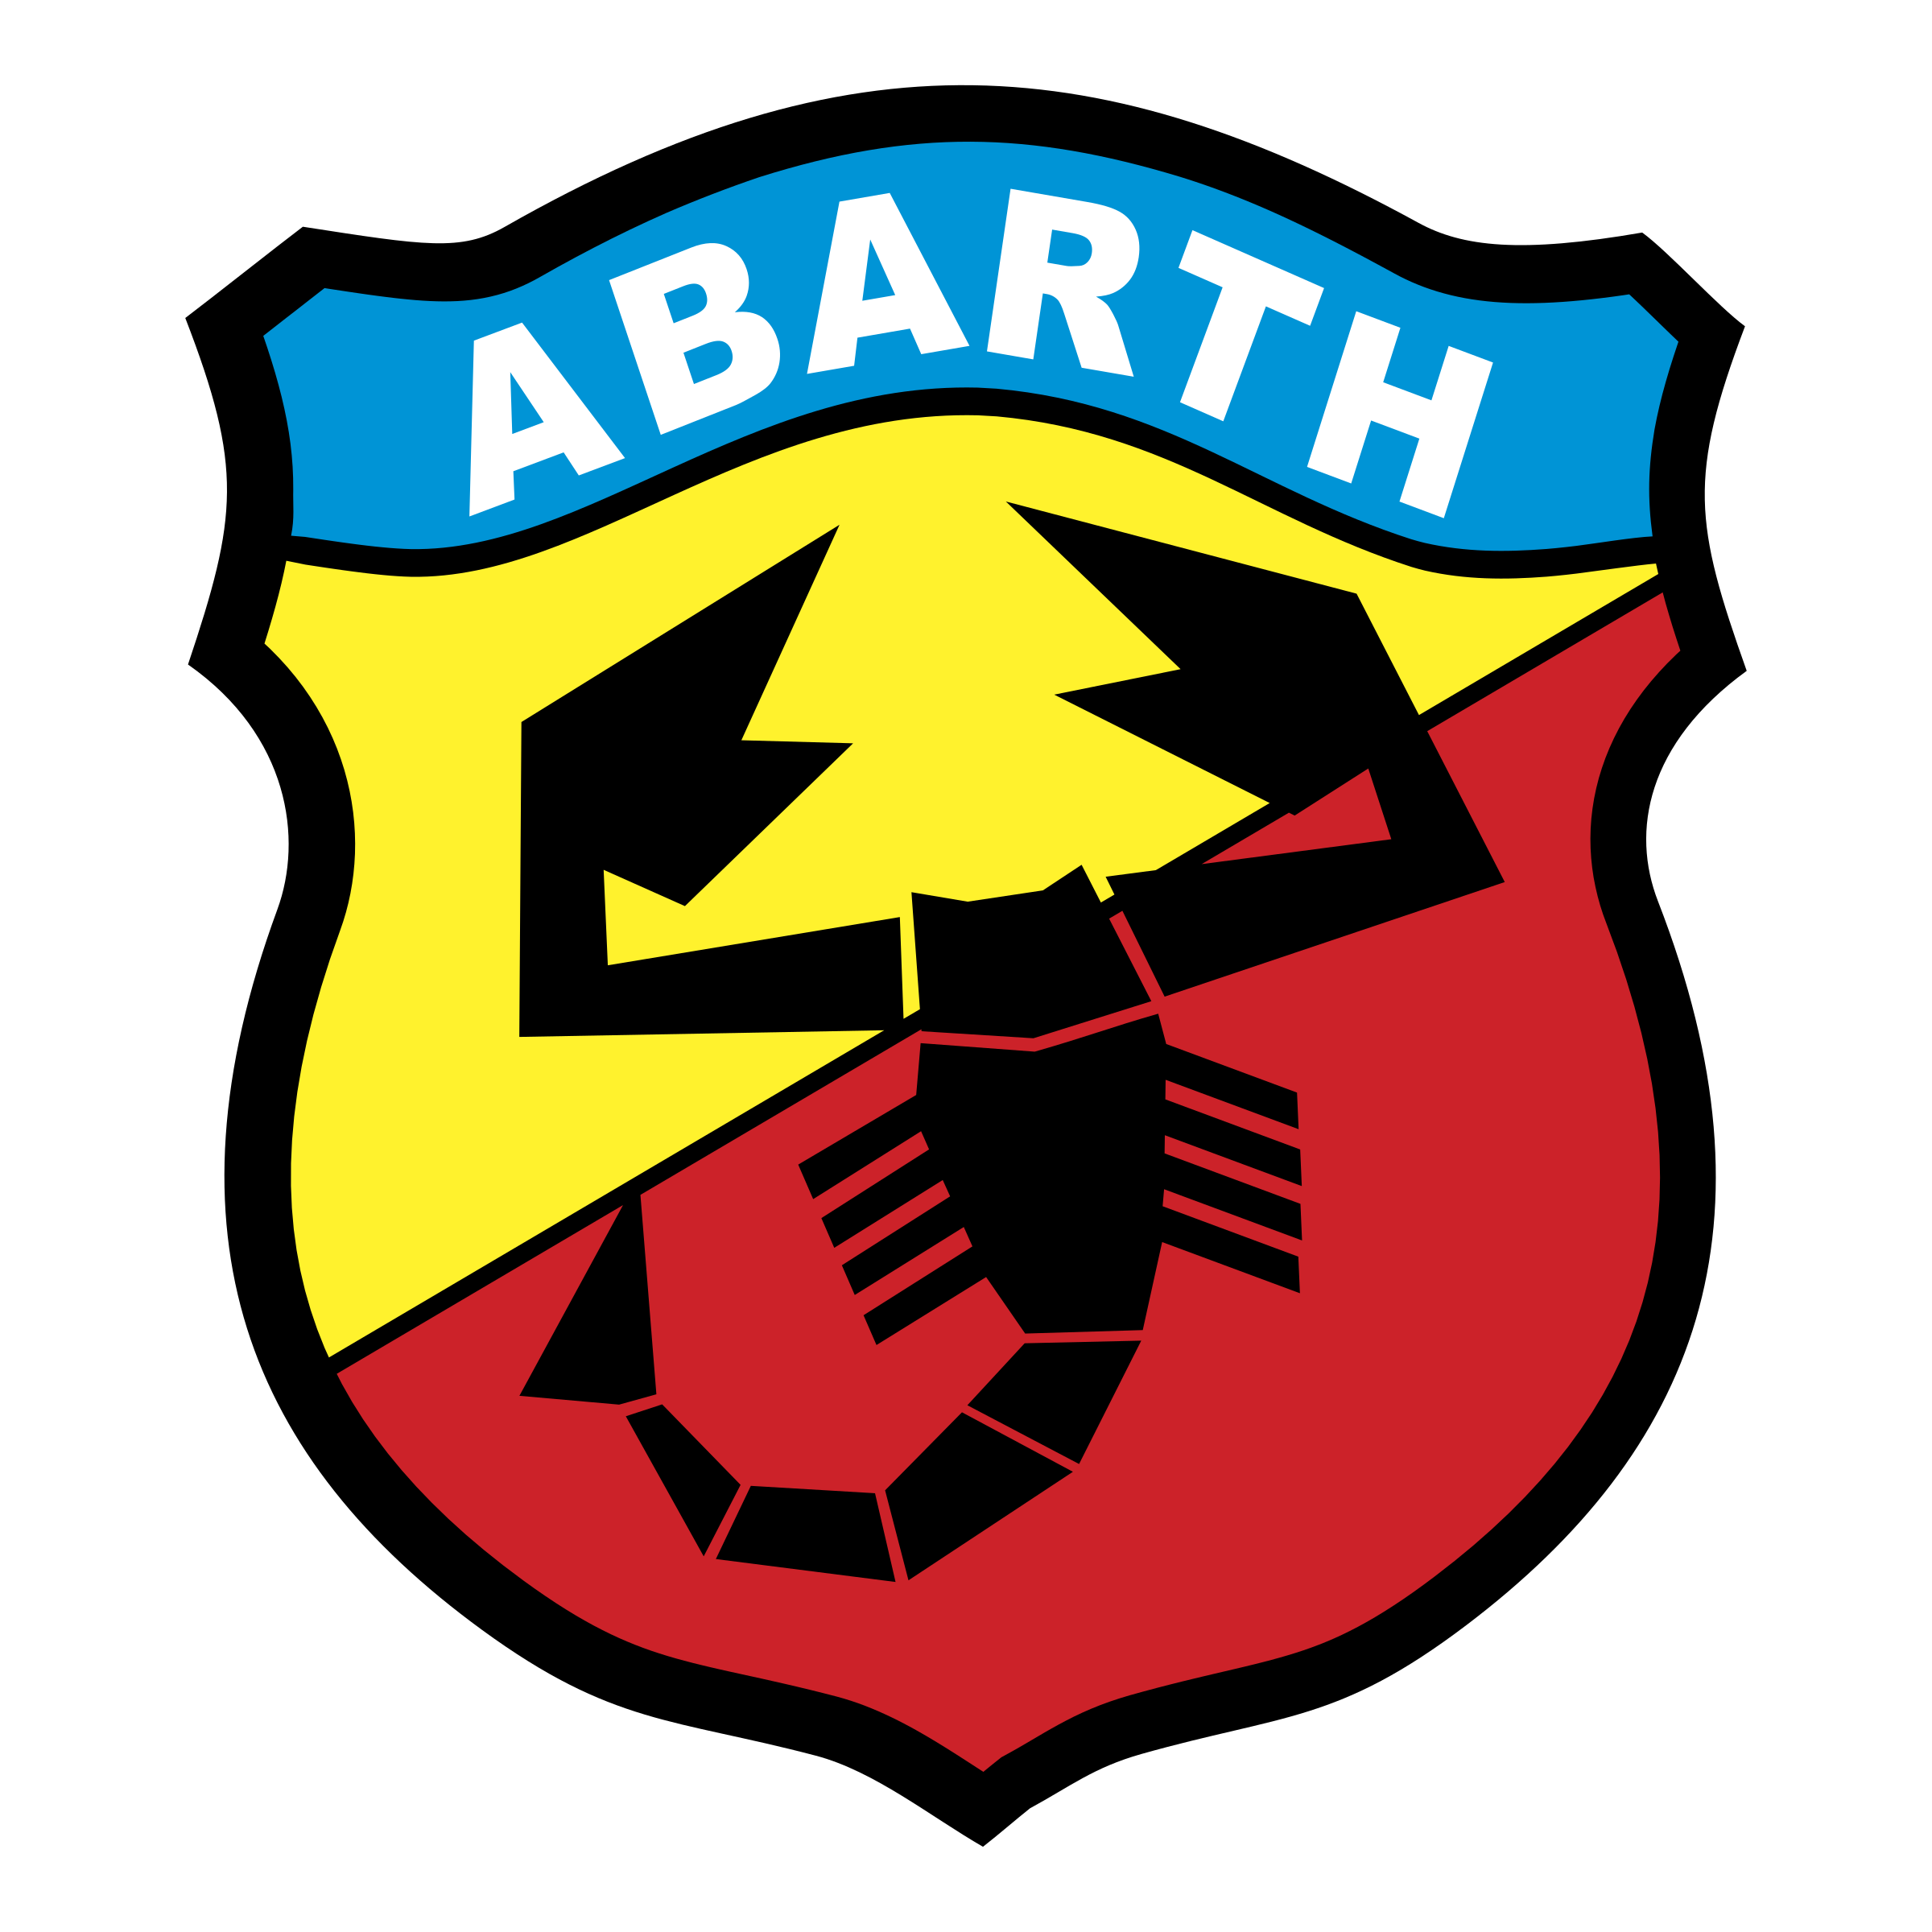 Abarth Logo PNG Transparent & SVG Vector.